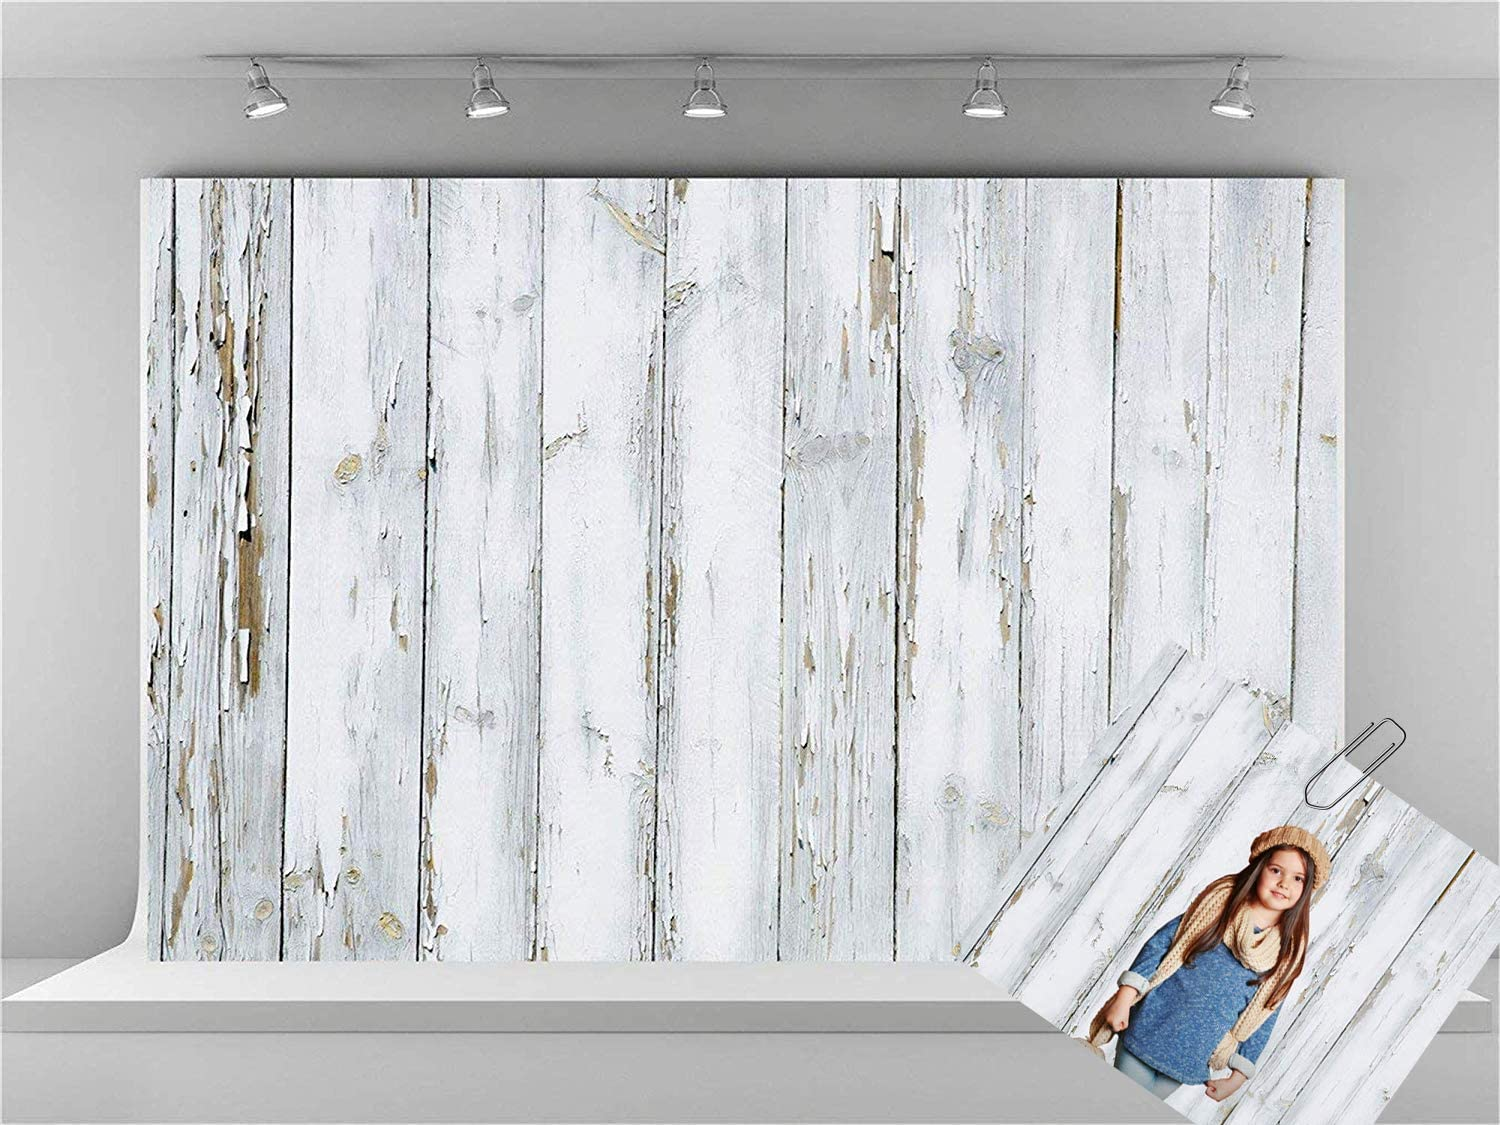 Kate 10x6.5ft Microfiber White Wood Wall Backdrops for Photoshoot Vintage Wooden Texture Background Newborn Adults Kids Portrait Photo Studio Backdrop